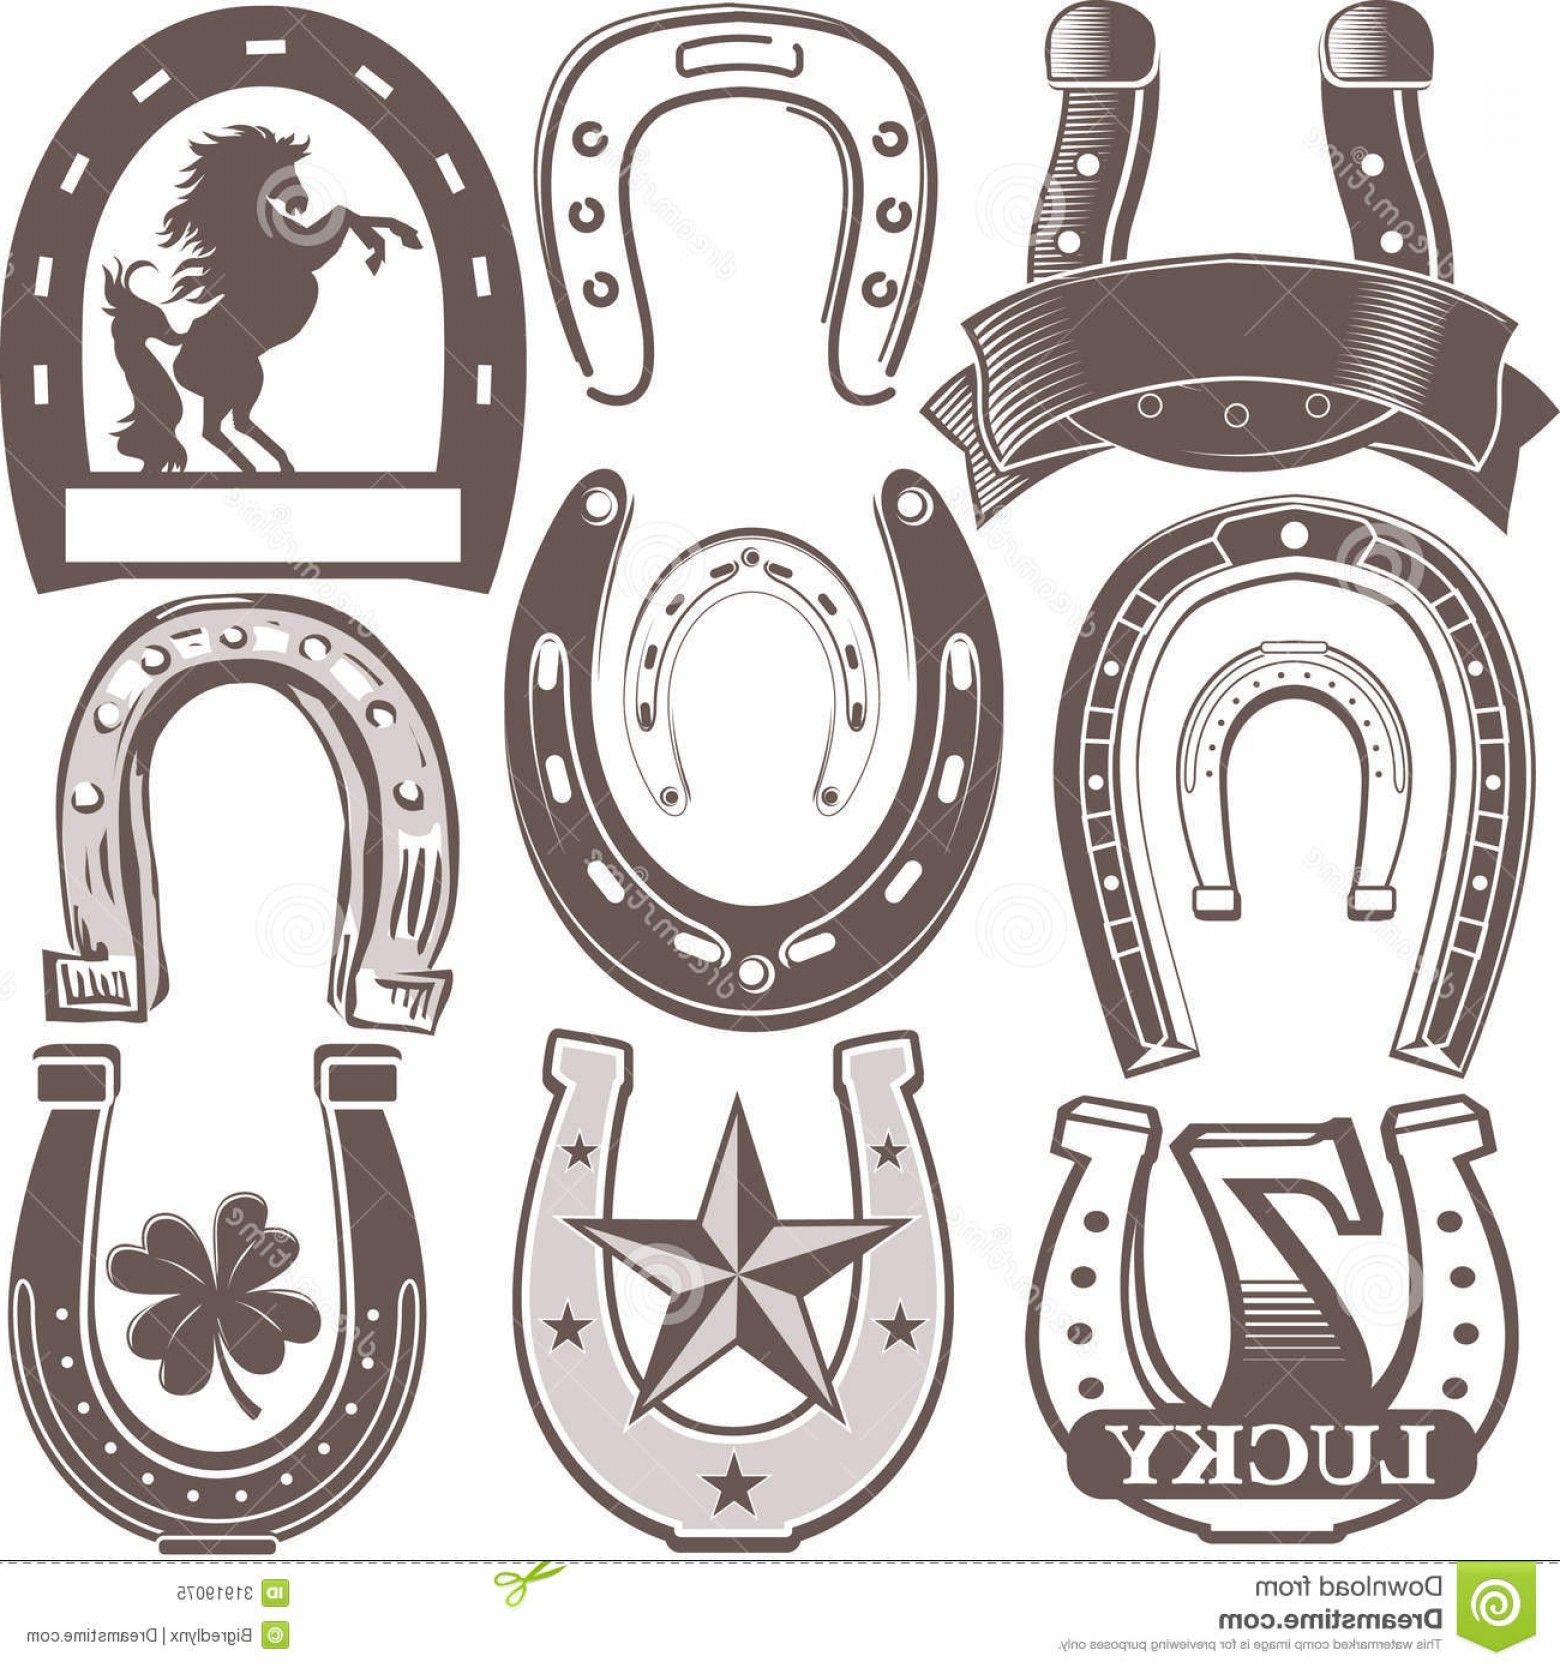 Tribal Vector Horseshoe Image: Royalty Free Stock Photo Horseshoe Collection Clip Art Symbols Icons Image